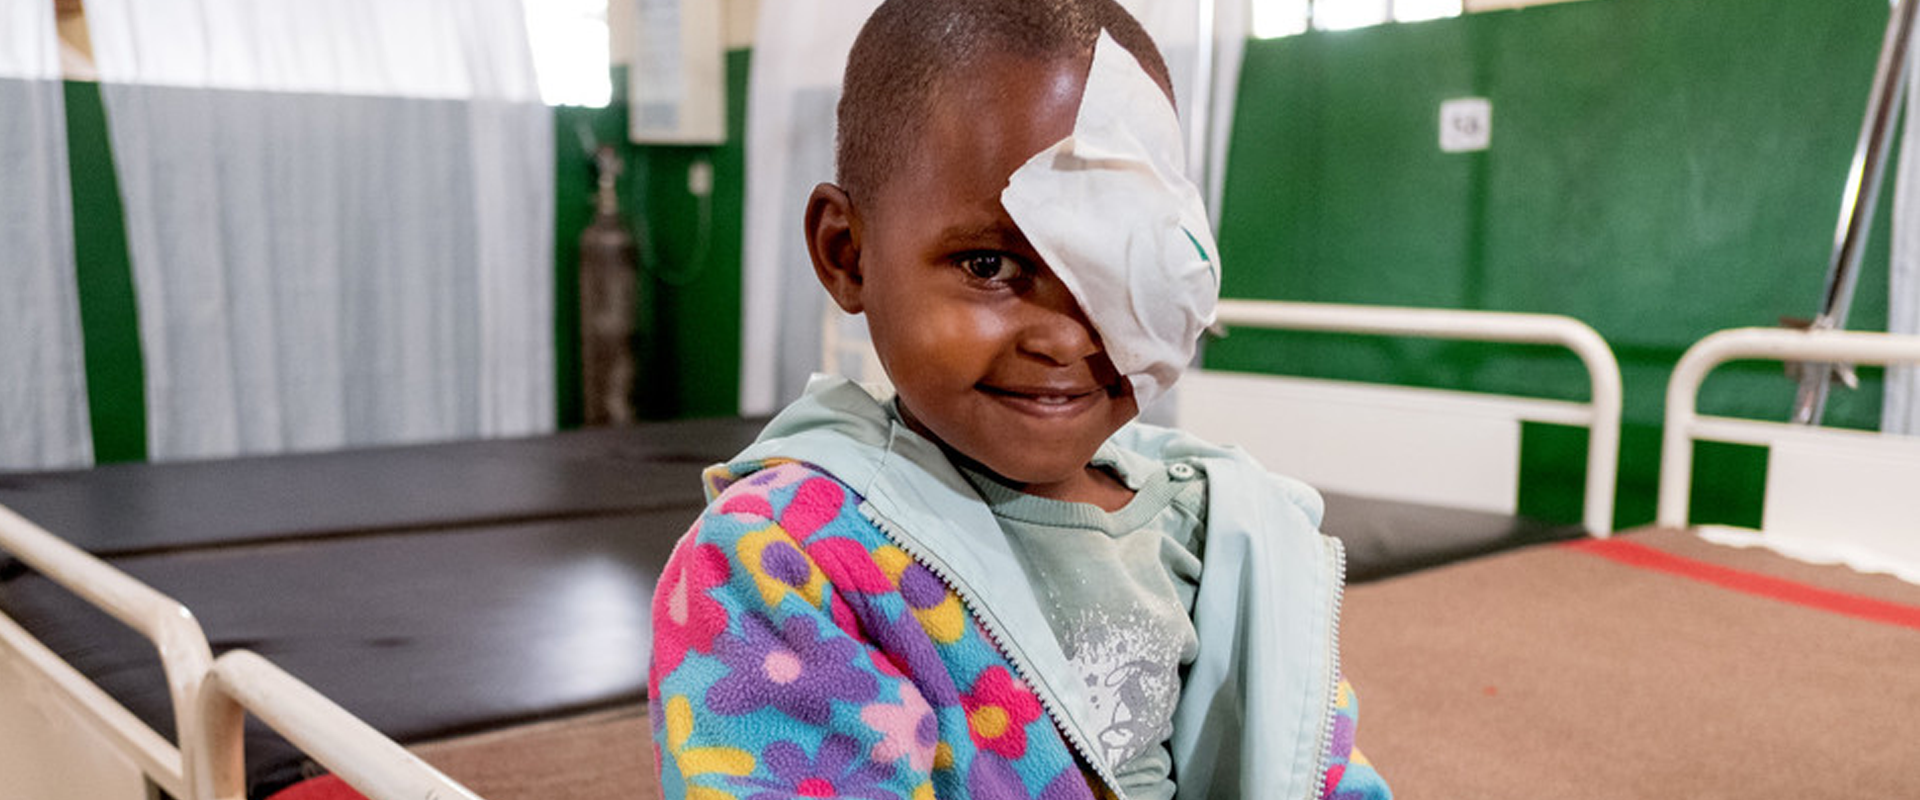 Charlotte from Rwanda has had successful cataract surgery at a CBM-supported hospital